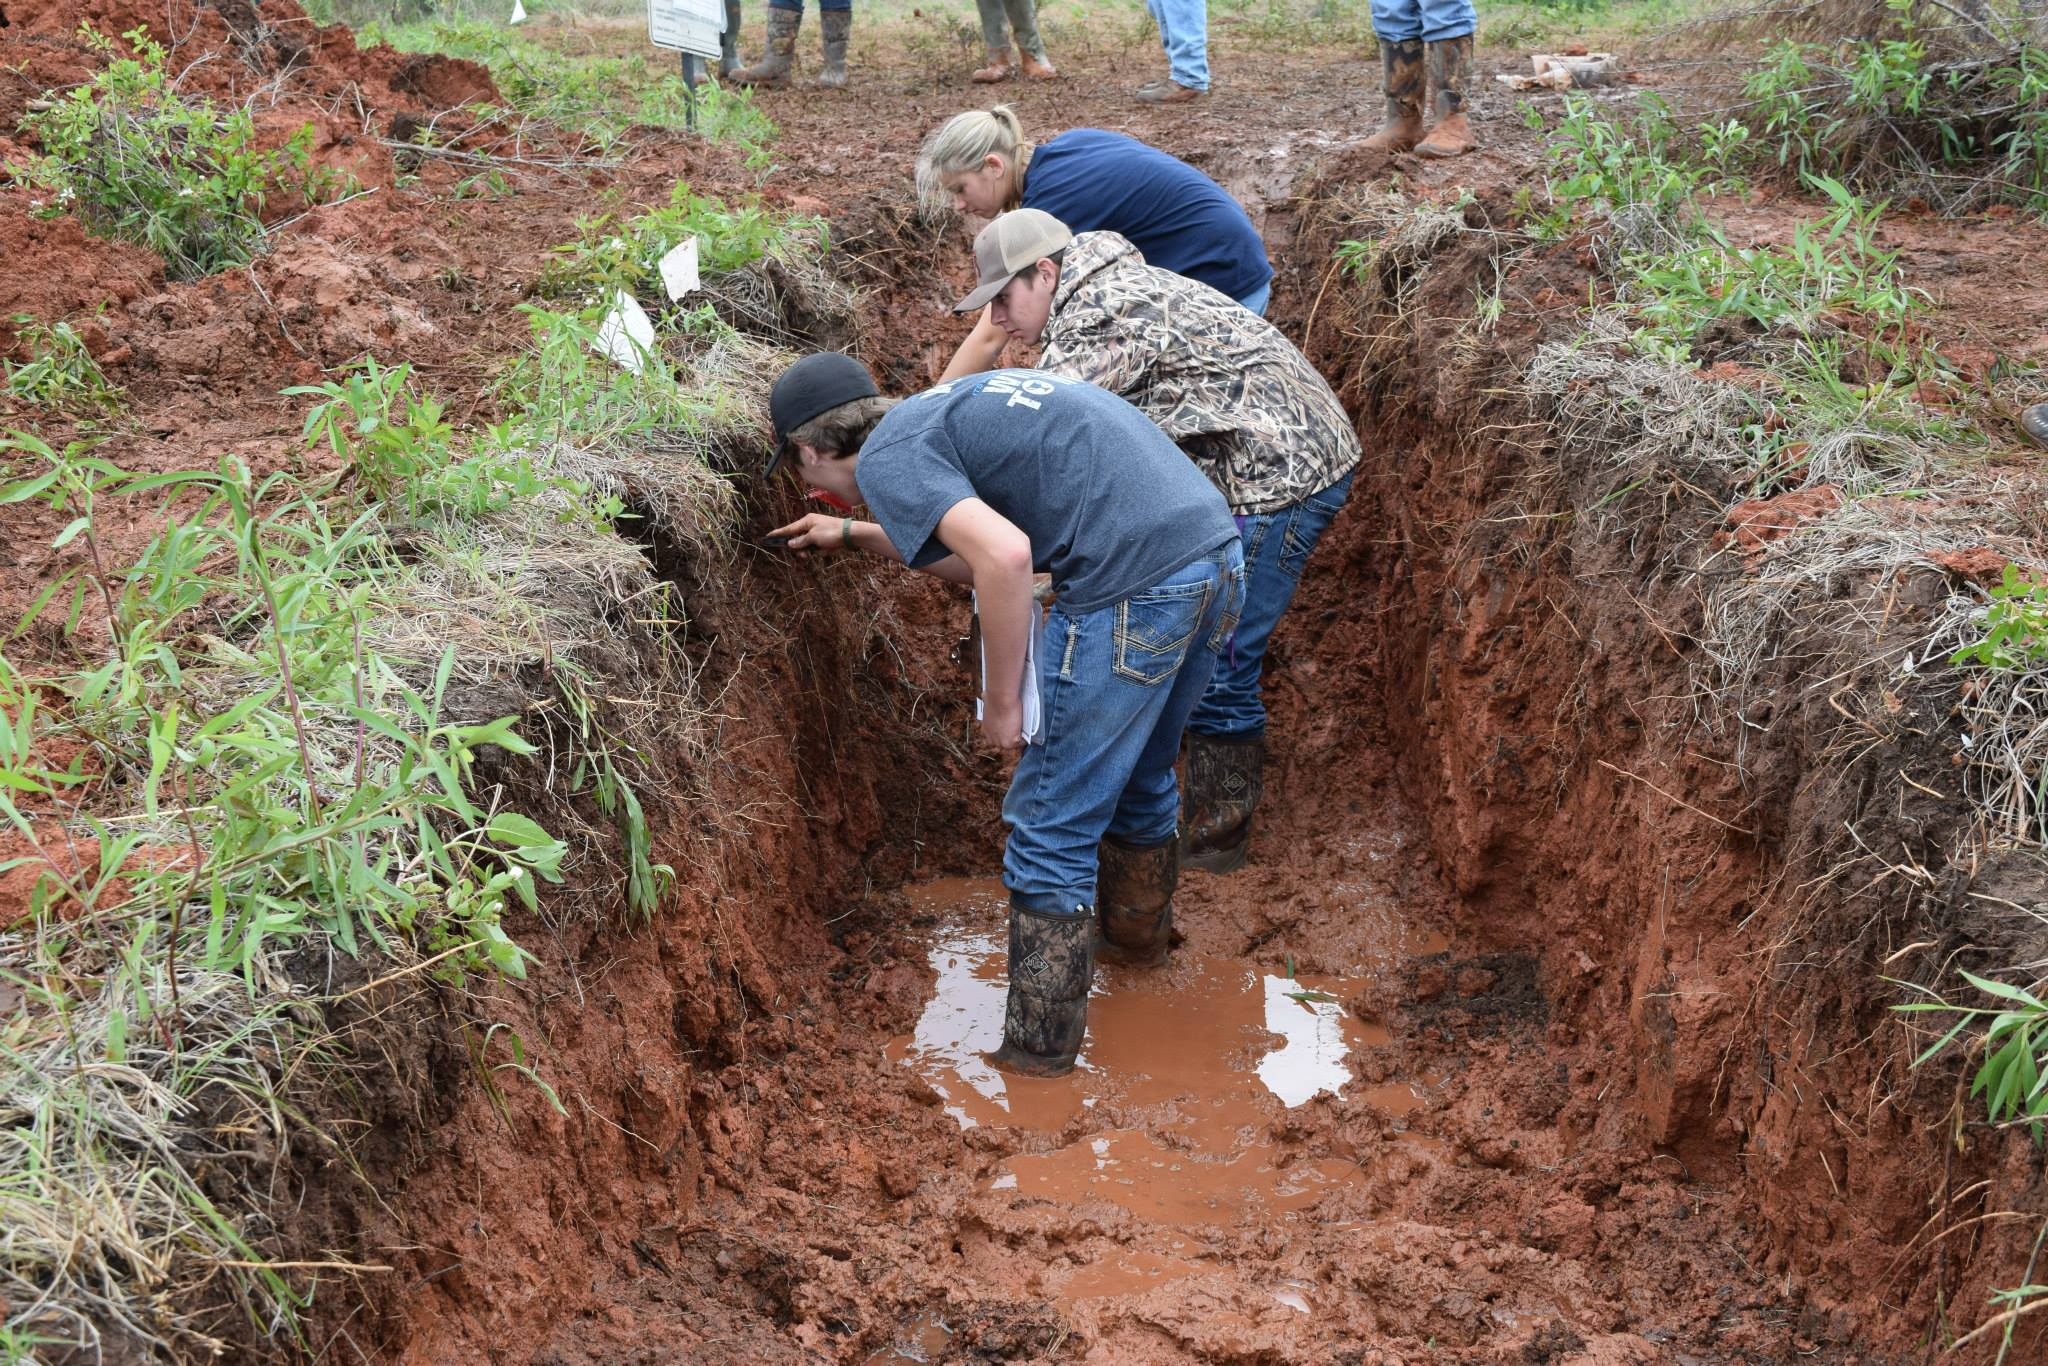 Land judging contestants in a muddy soil pit.